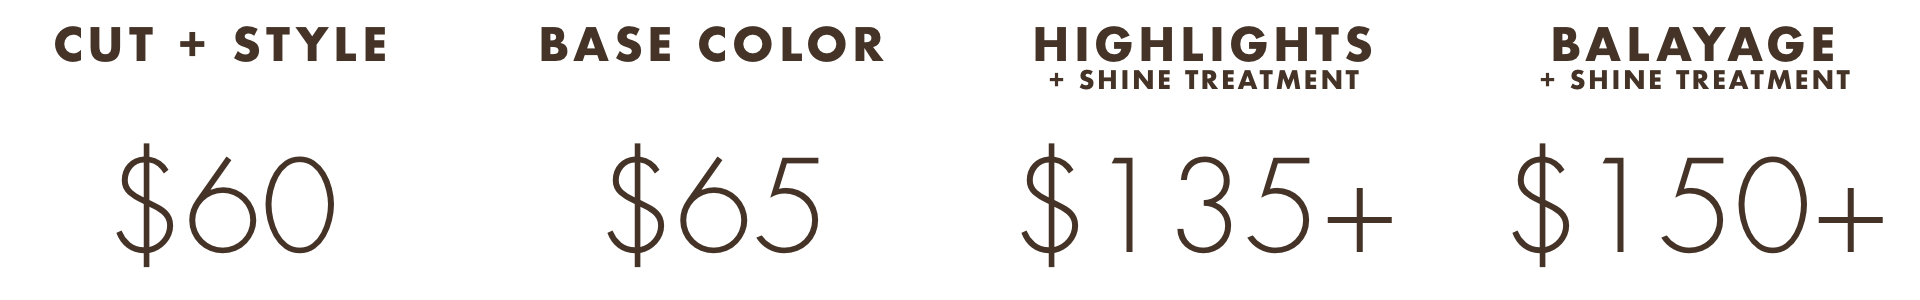 Stylist Pricing Web Insert New.png